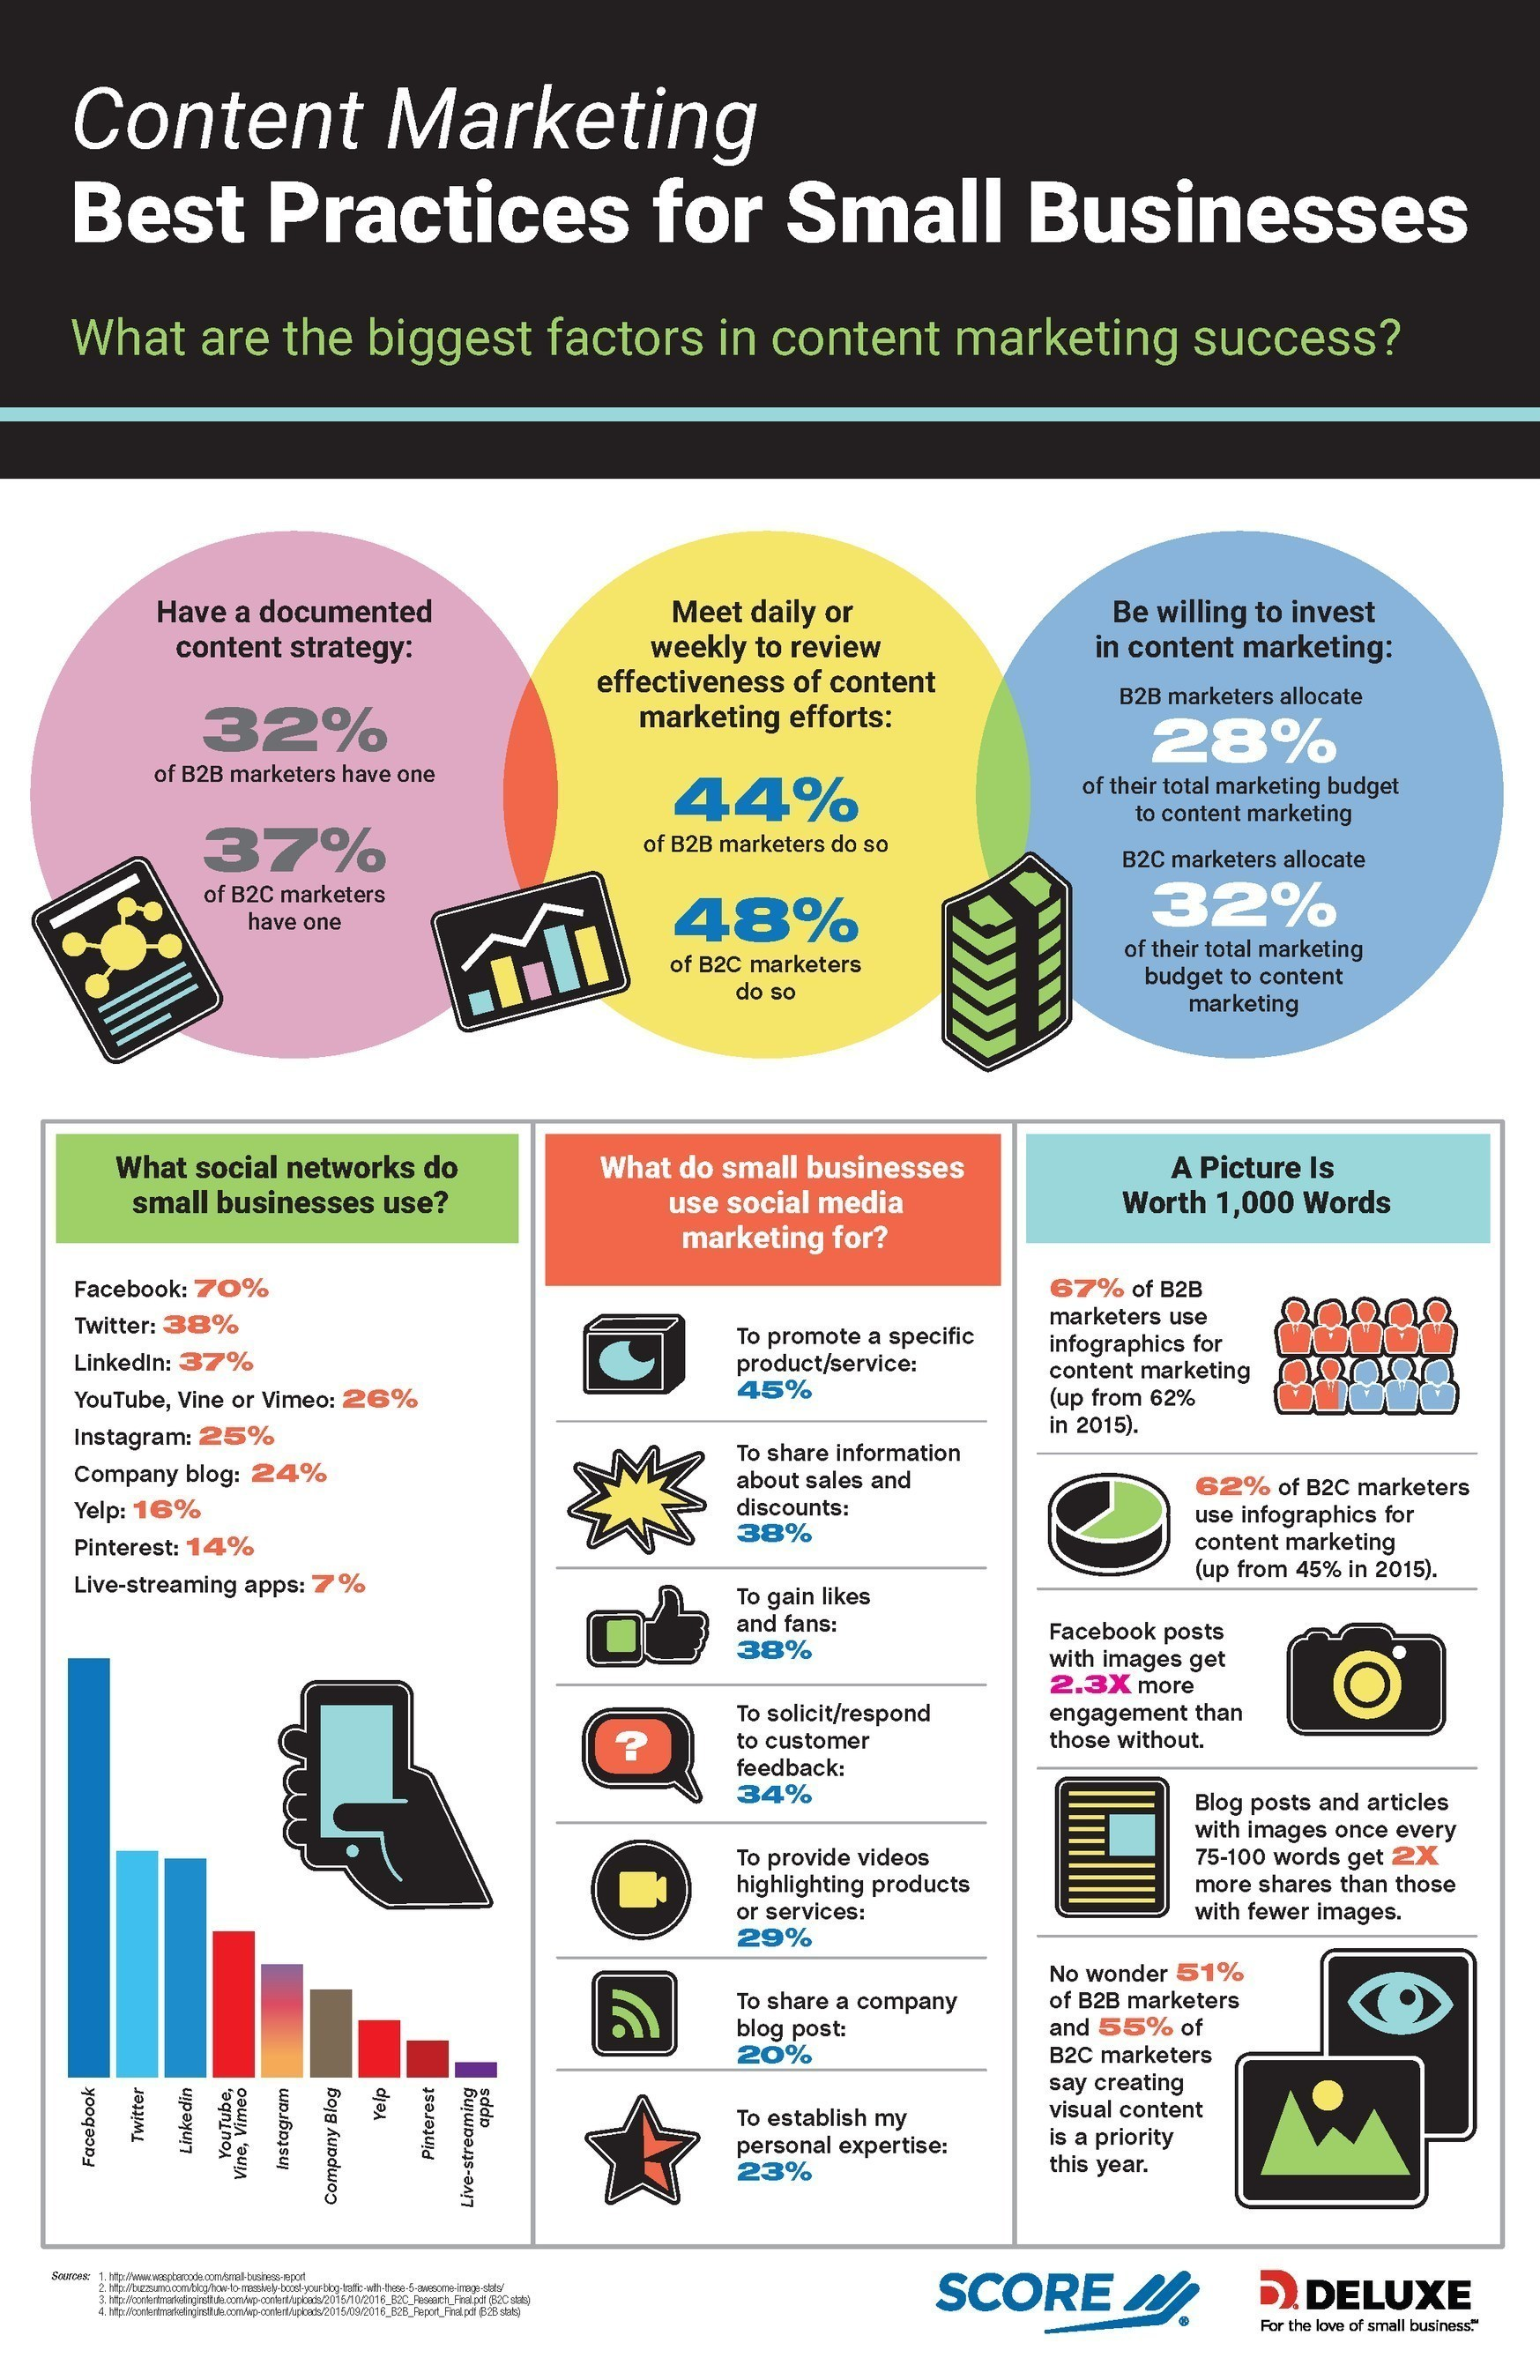 SCORE Infographic: Content Marketing for Small Businesses